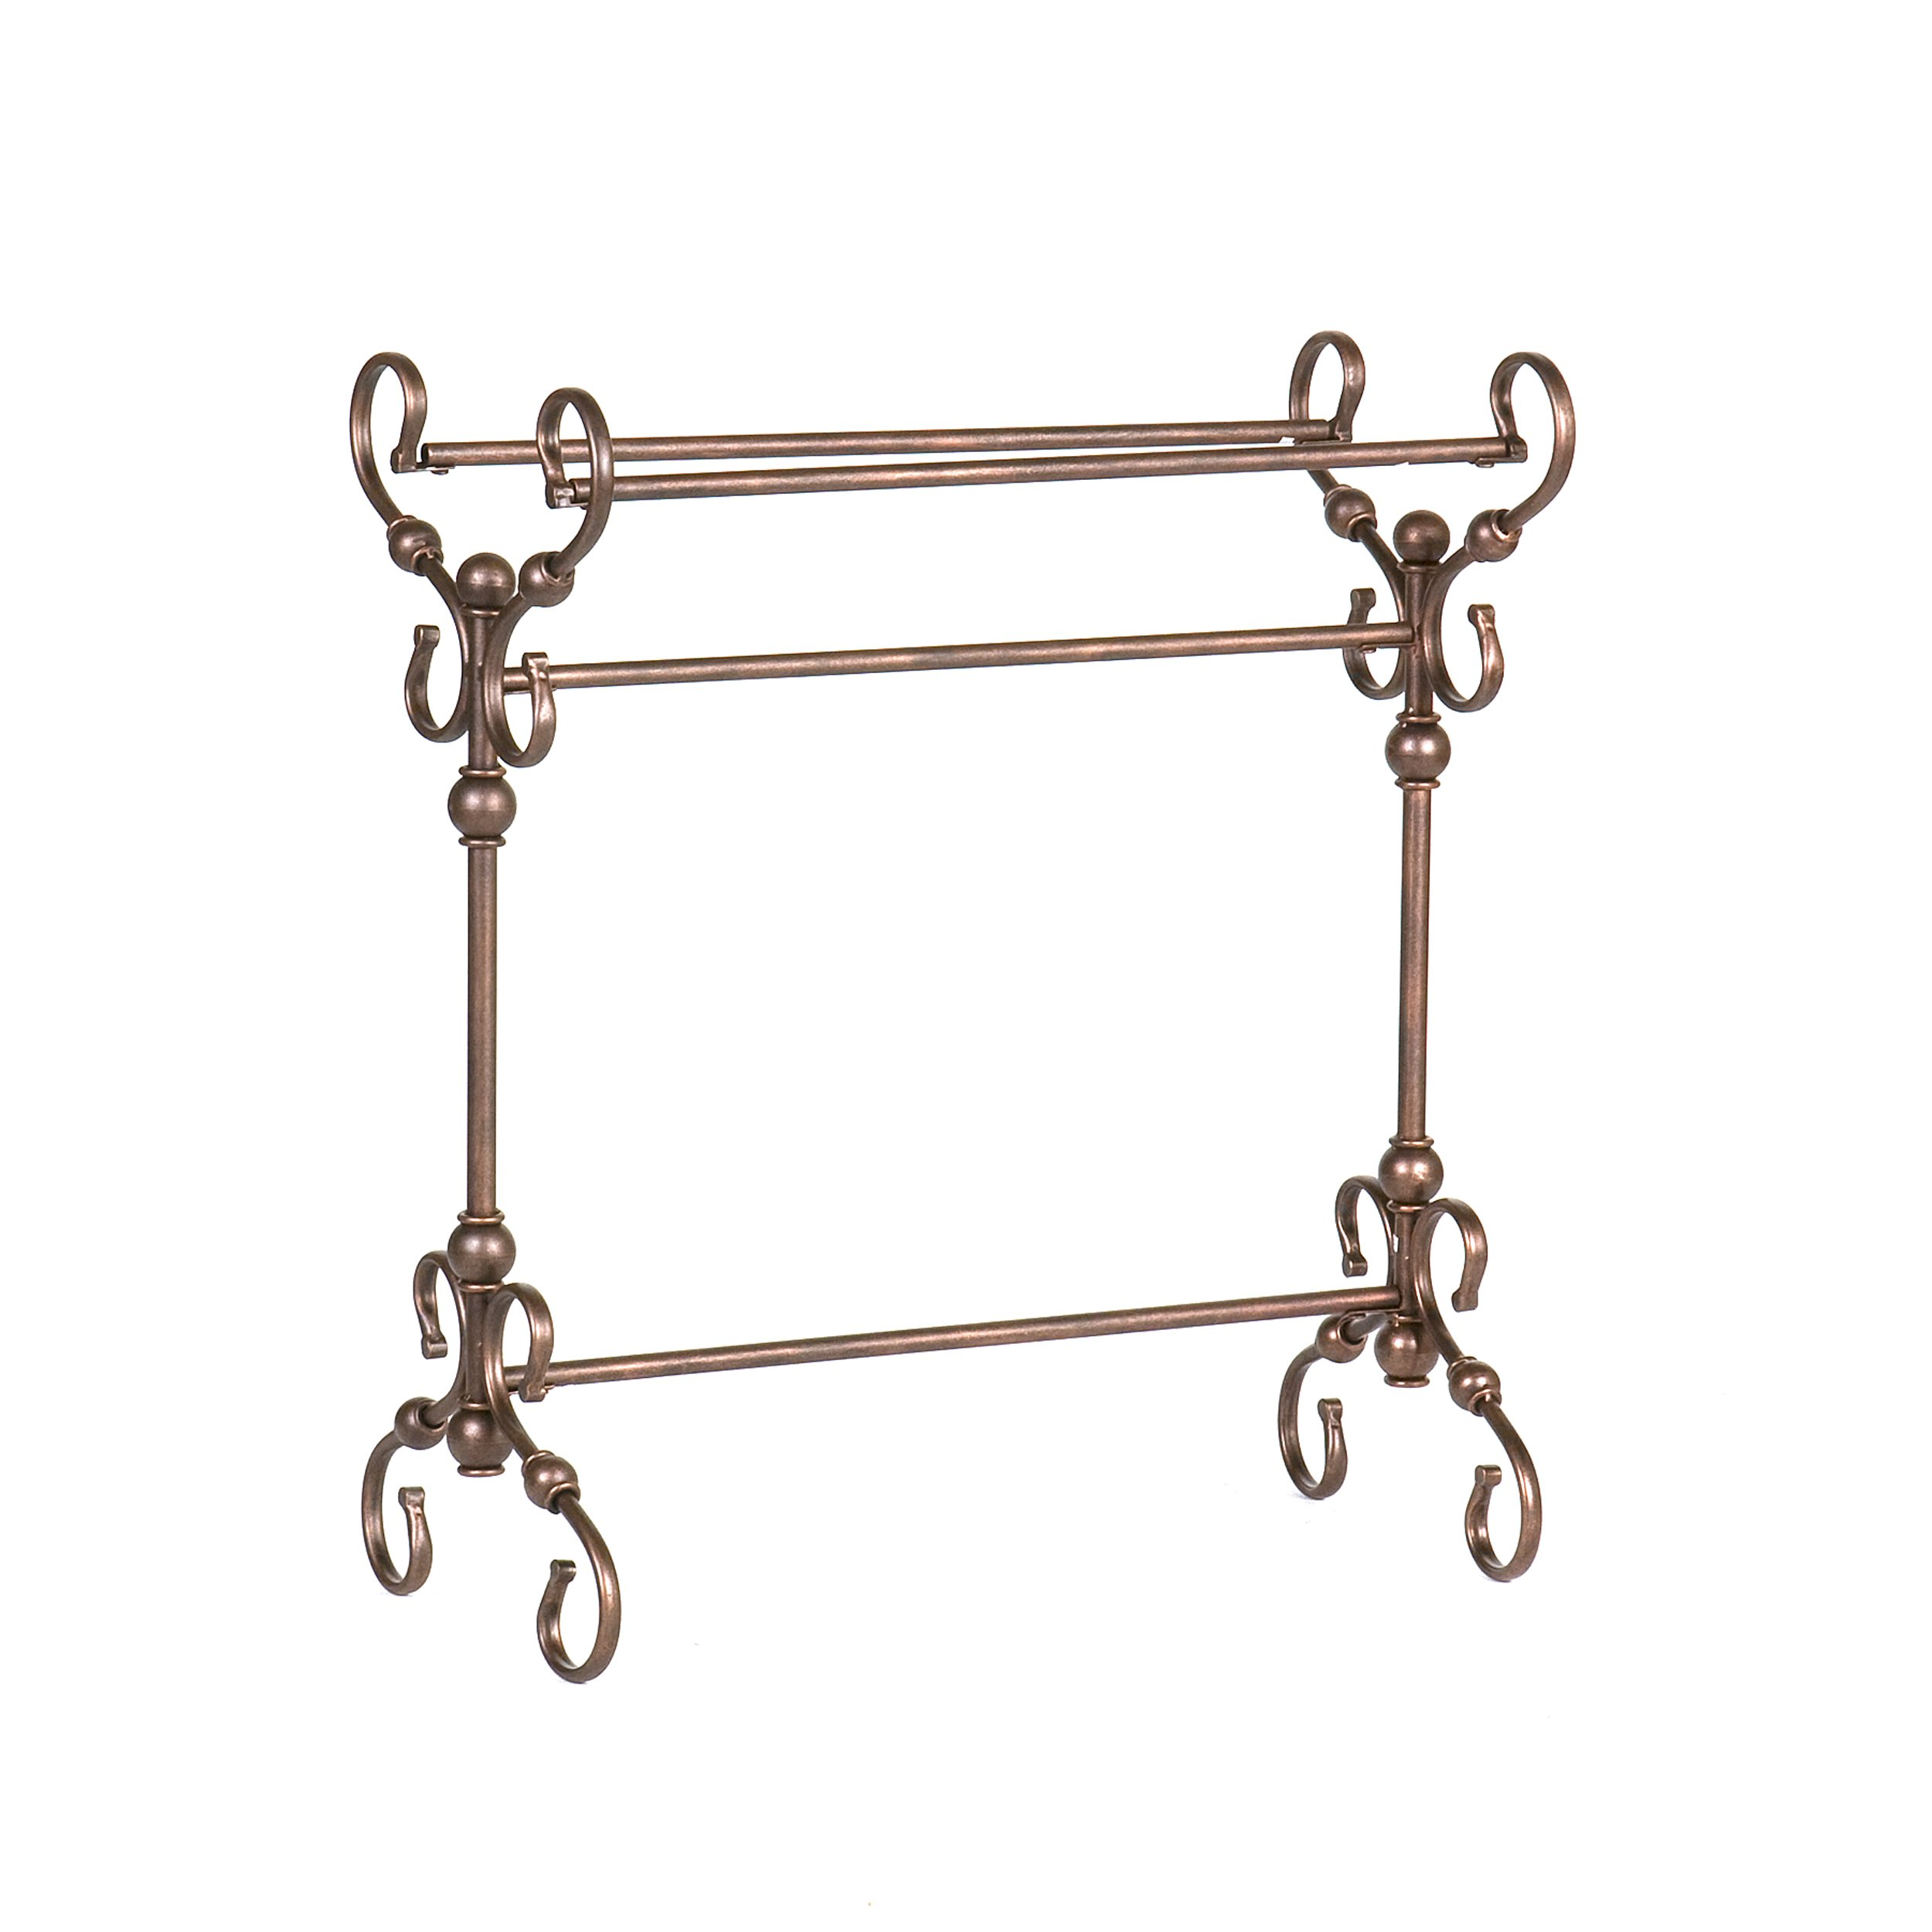 Lourdes Blanket Rack - Metal Scroll Work w/ Antique Bronze Finish - Traditional Style by Southern Enterprises